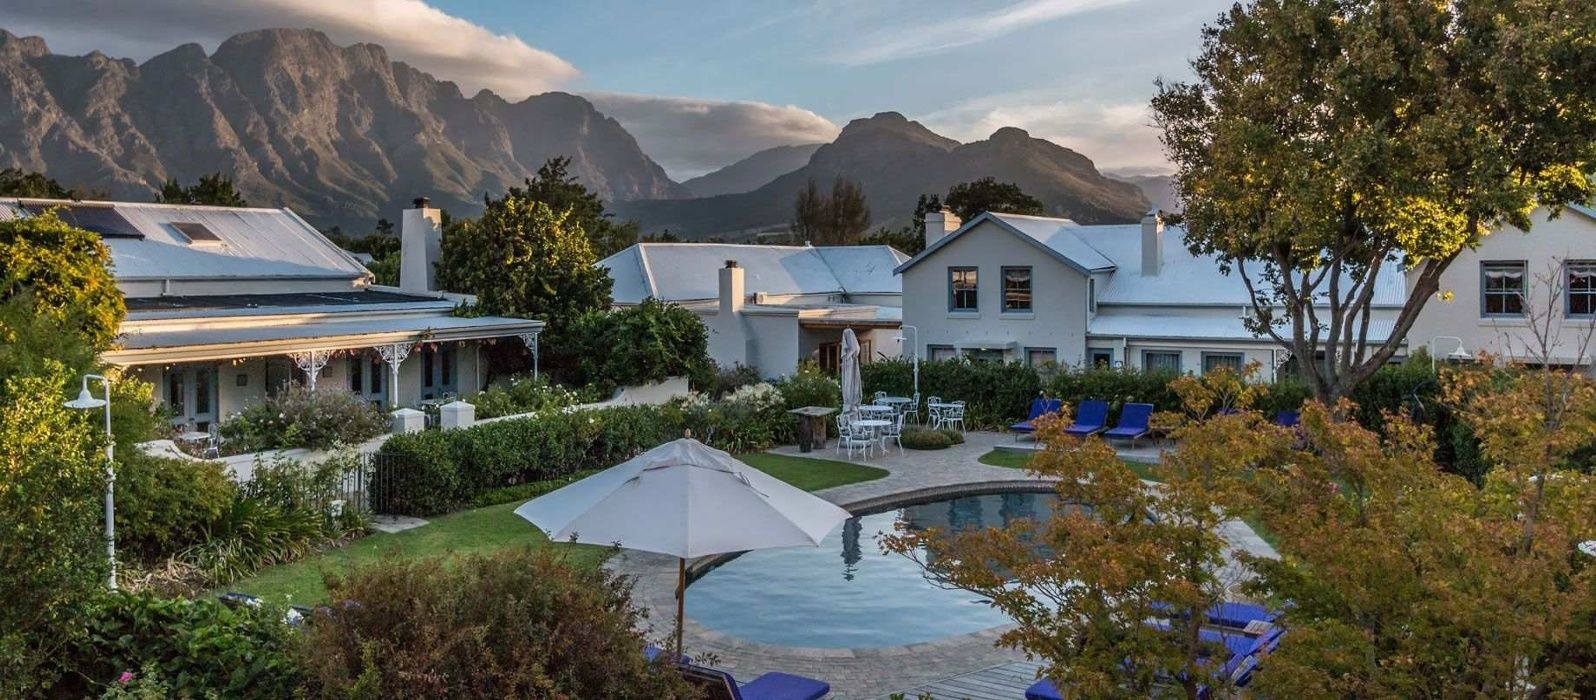 Dine with South Africa's Winemakers​ Tour Trip 4